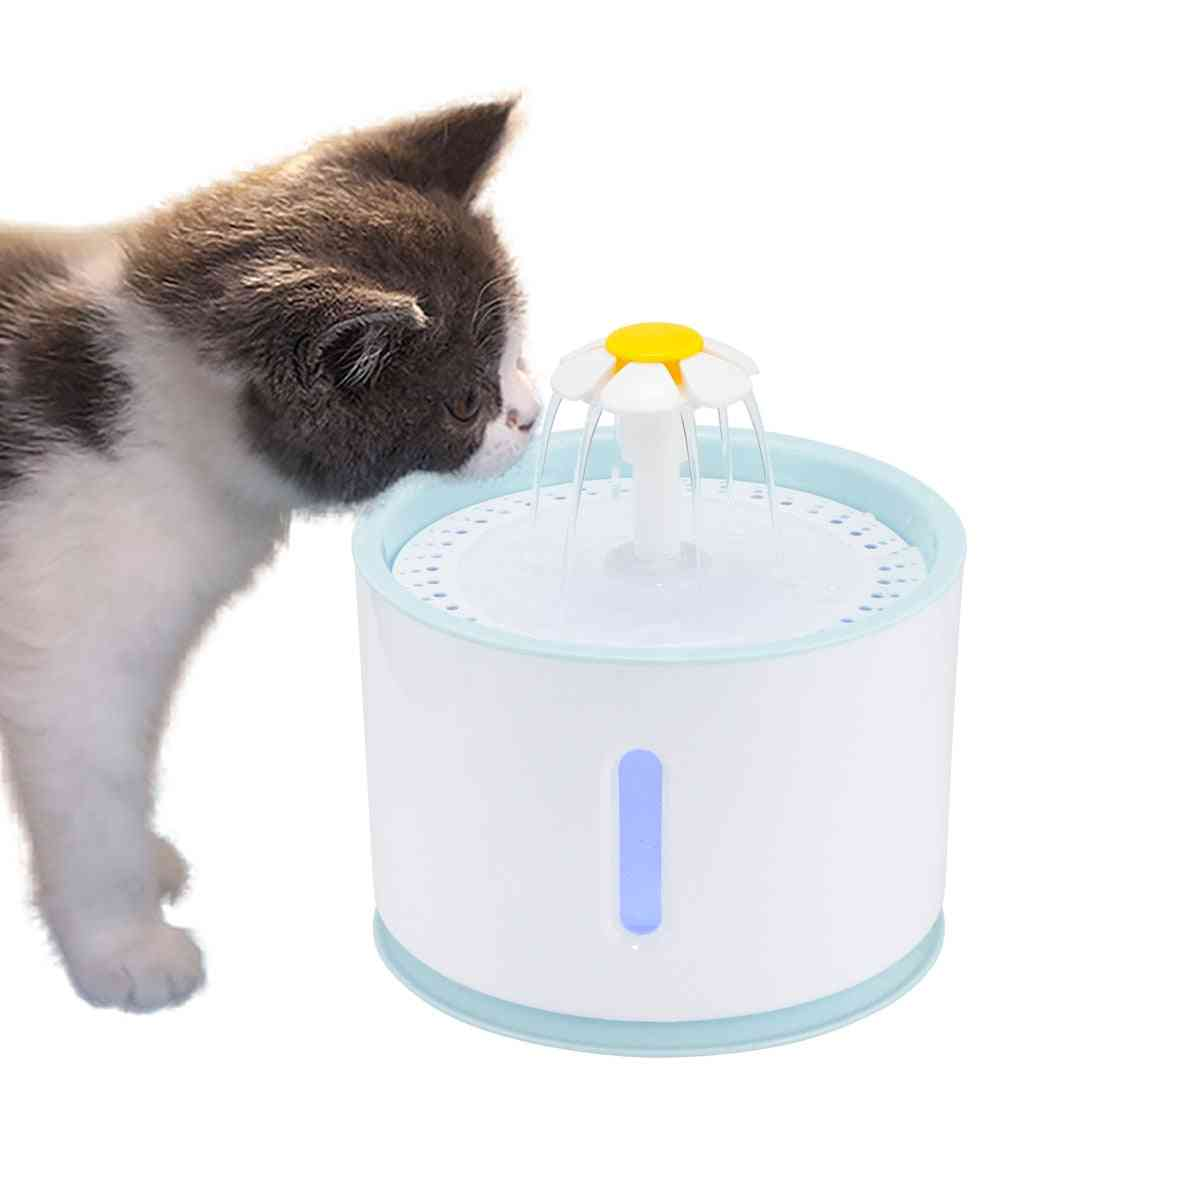 Led Electric Usb Automatic Pet Cat Water Fountain Mute Drinker Feeder Bowl & Dispenser